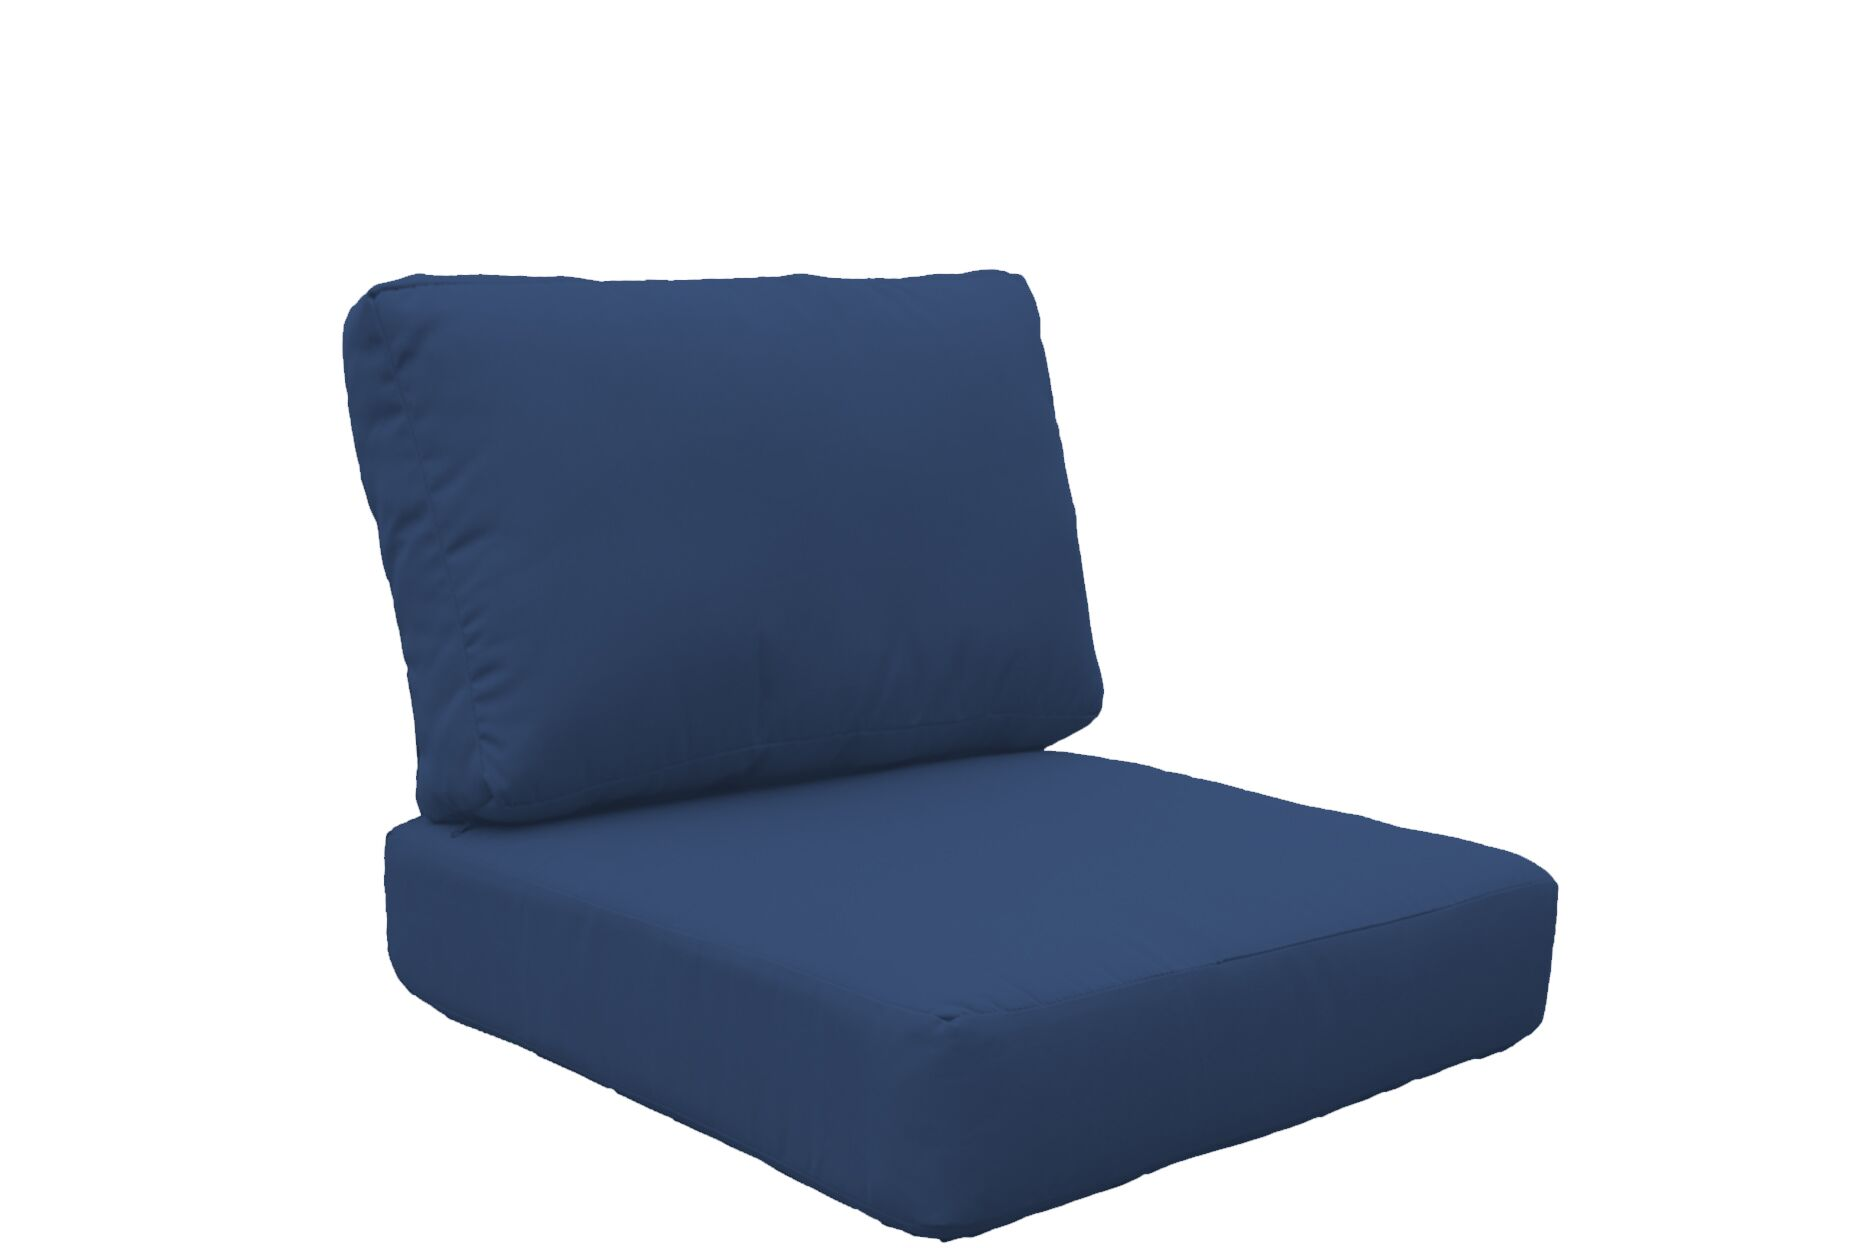 Fairmont 4 Piece Outdoor�Lounge Chair Cushion Set Fabric: Navy